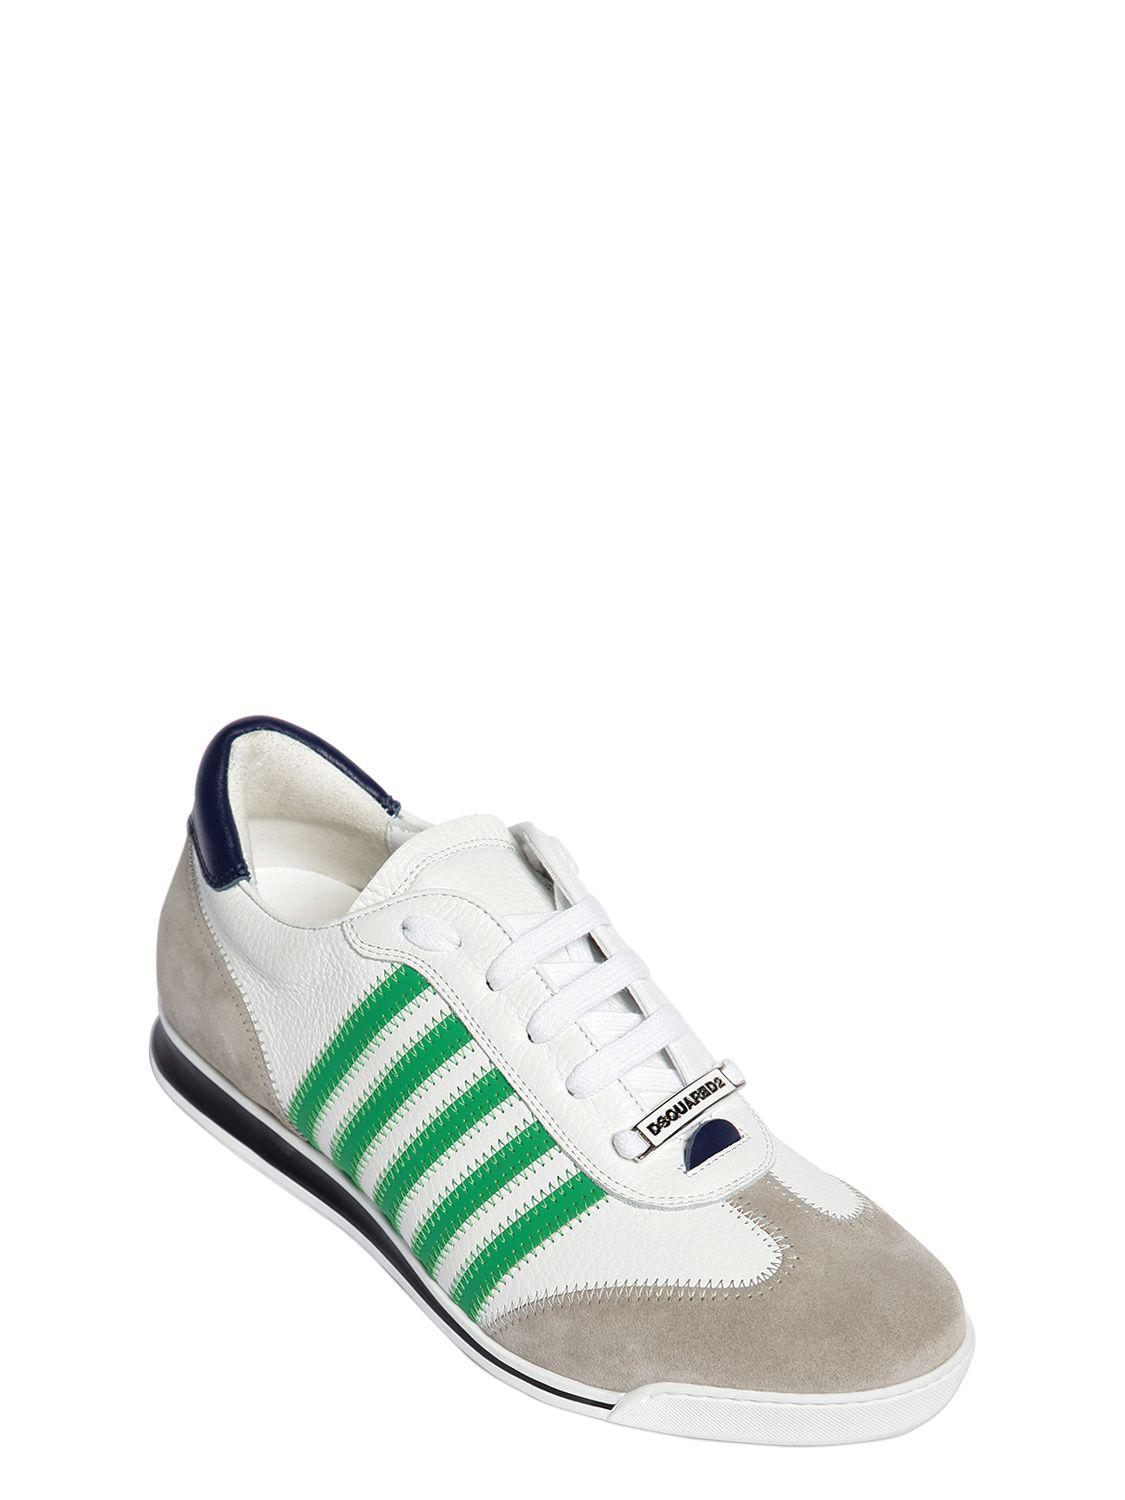 5e9add9273b Lyst - DSquared² New Runner Leather   Suede Sneakers in Green for Men